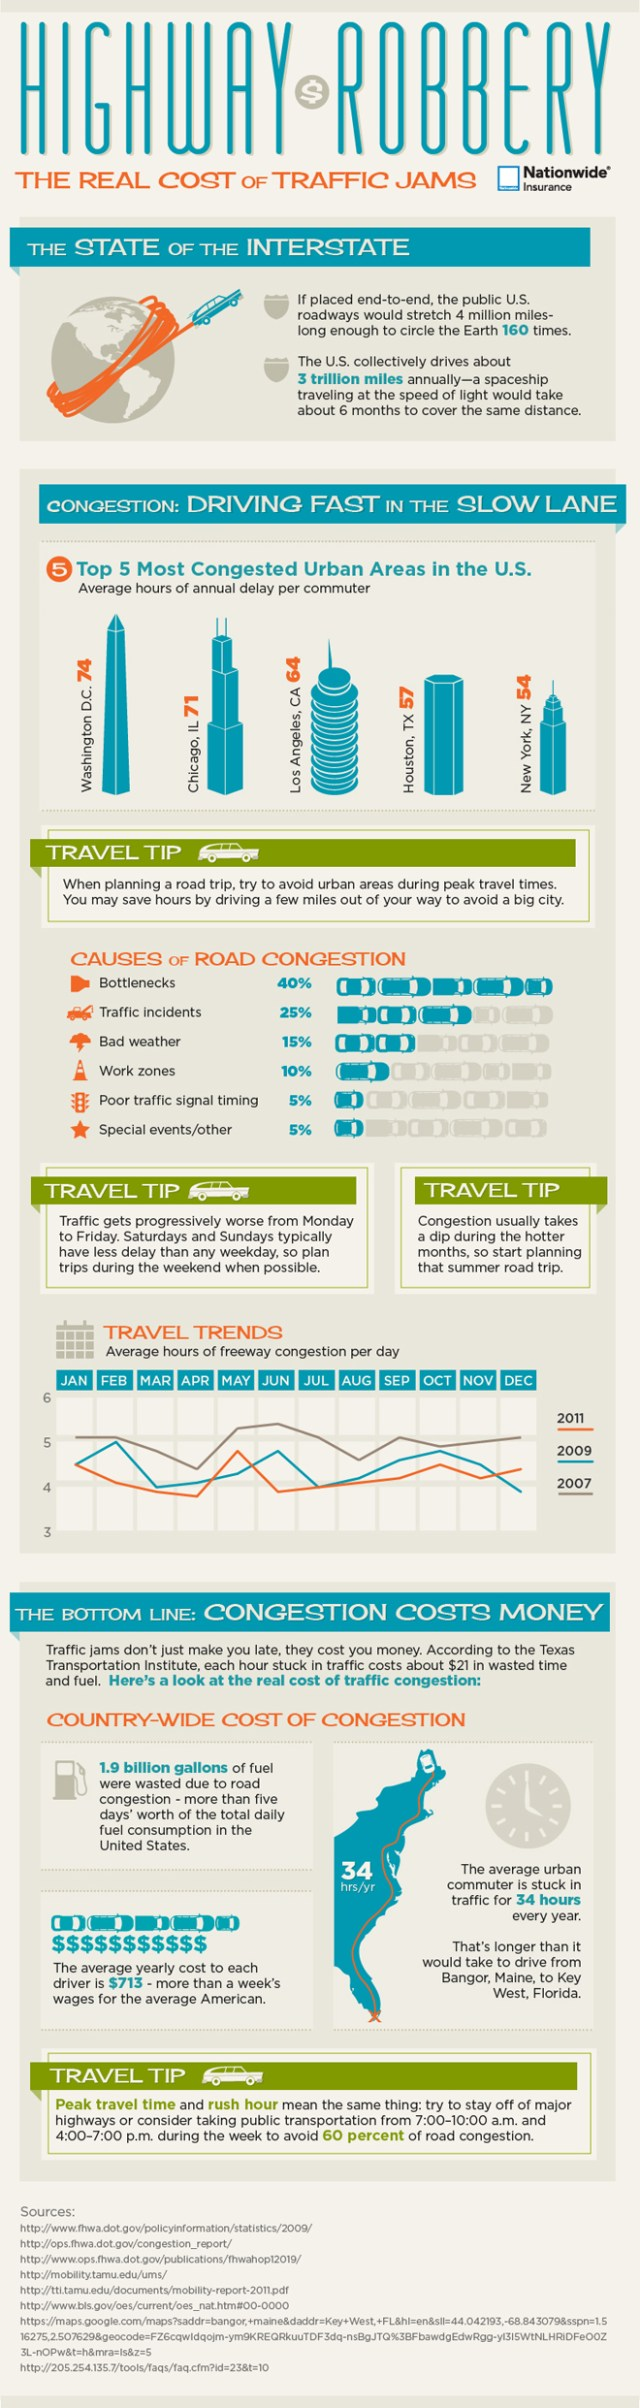 The cost of traffic congestion.